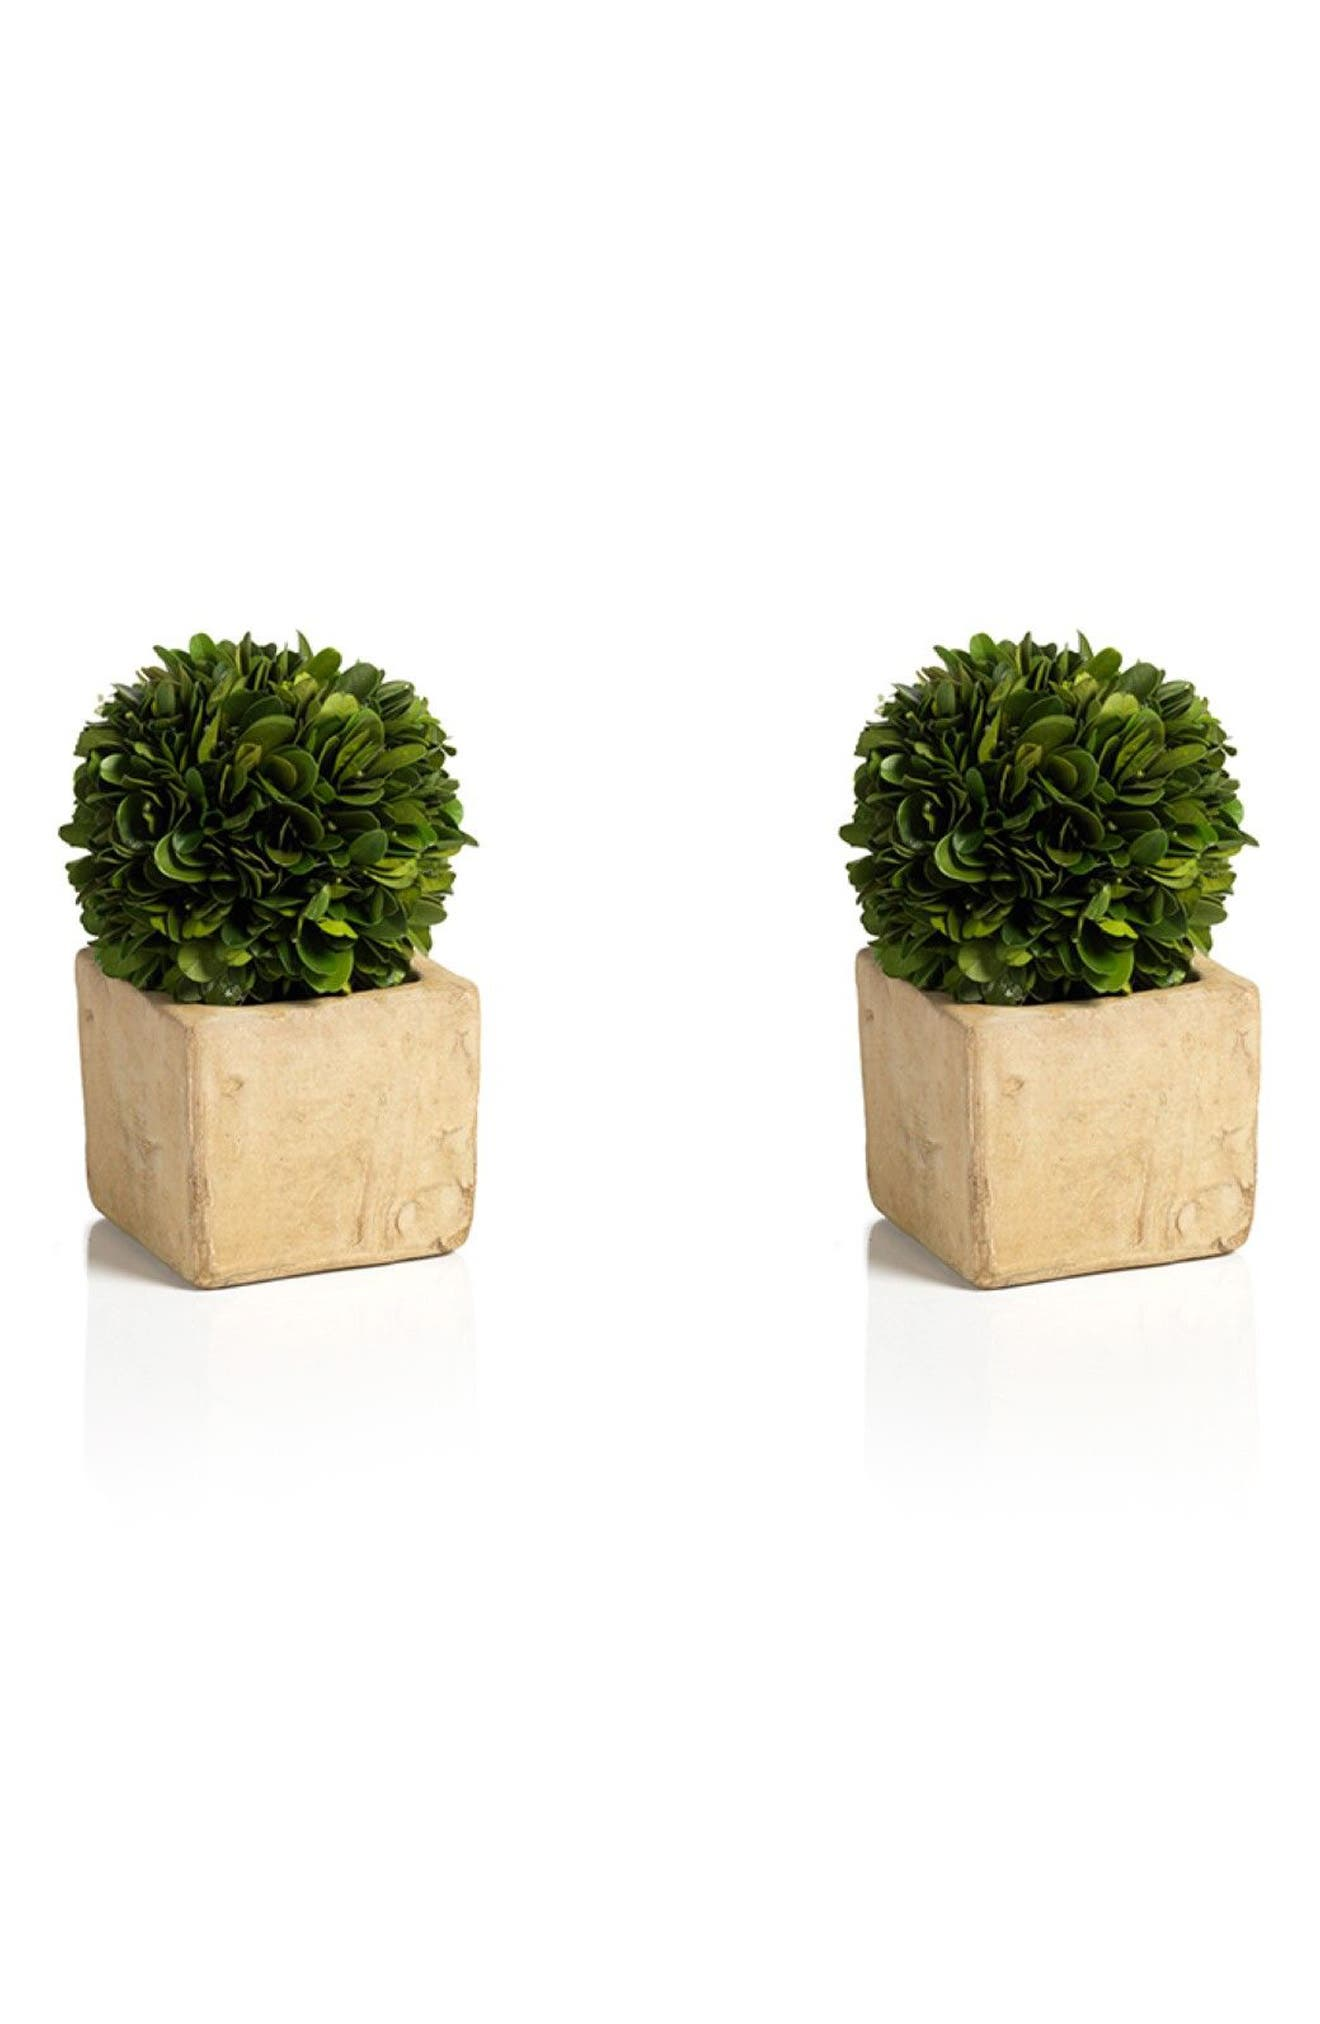 ZODAX,                             Carina Set of 2 Topiary Decorations,                             Main thumbnail 1, color,                             300